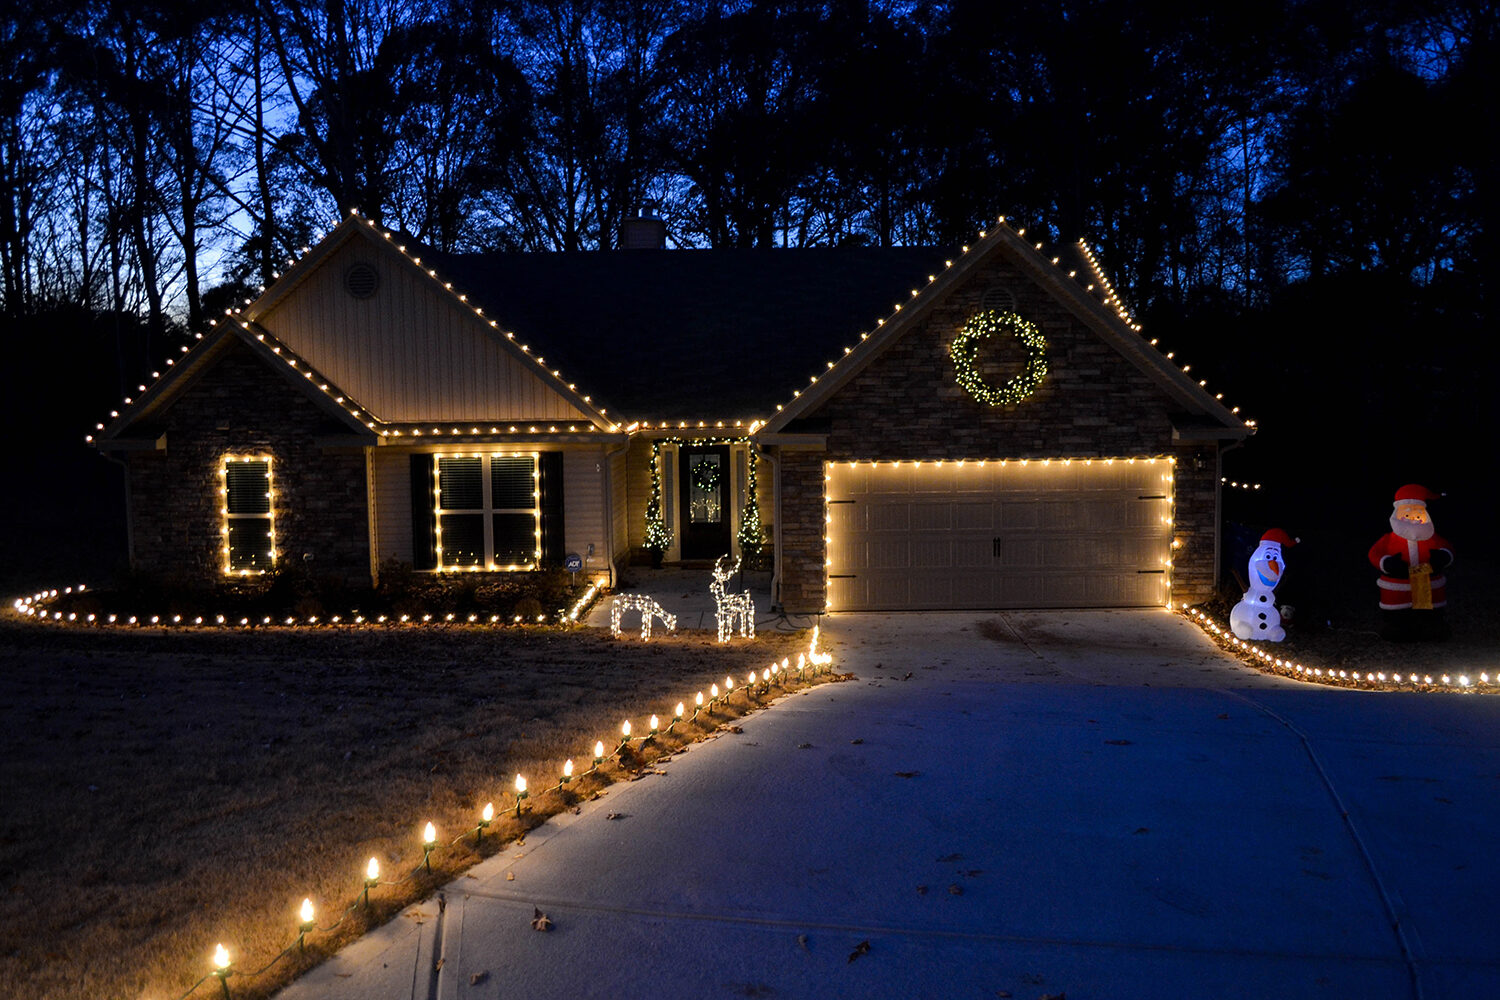 Hang Christmas Lights Across The Roof And Down The Driveway.